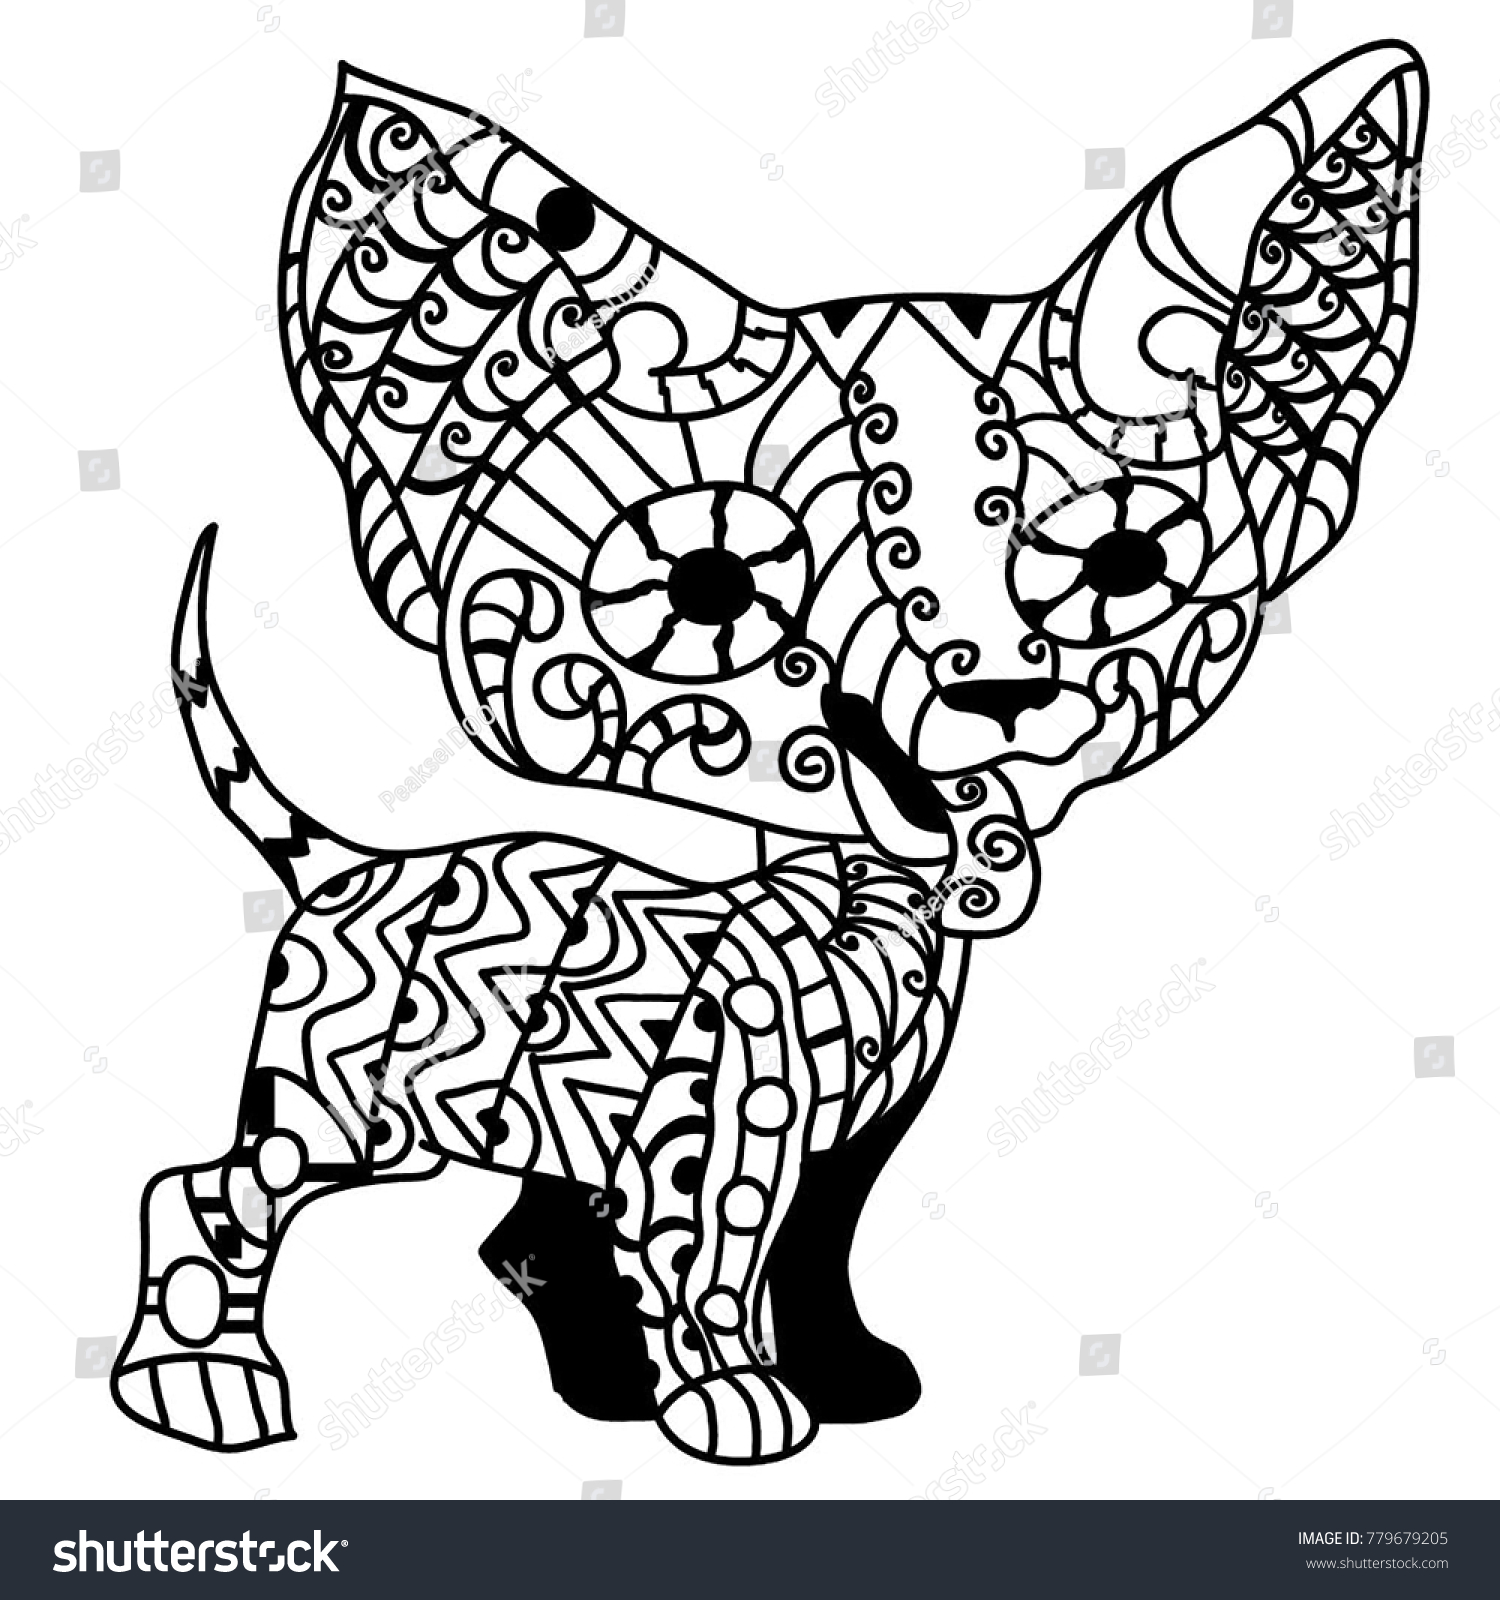 Cute Doggy Chihuahua Coloring Page Stock Illustration 779679205 ...